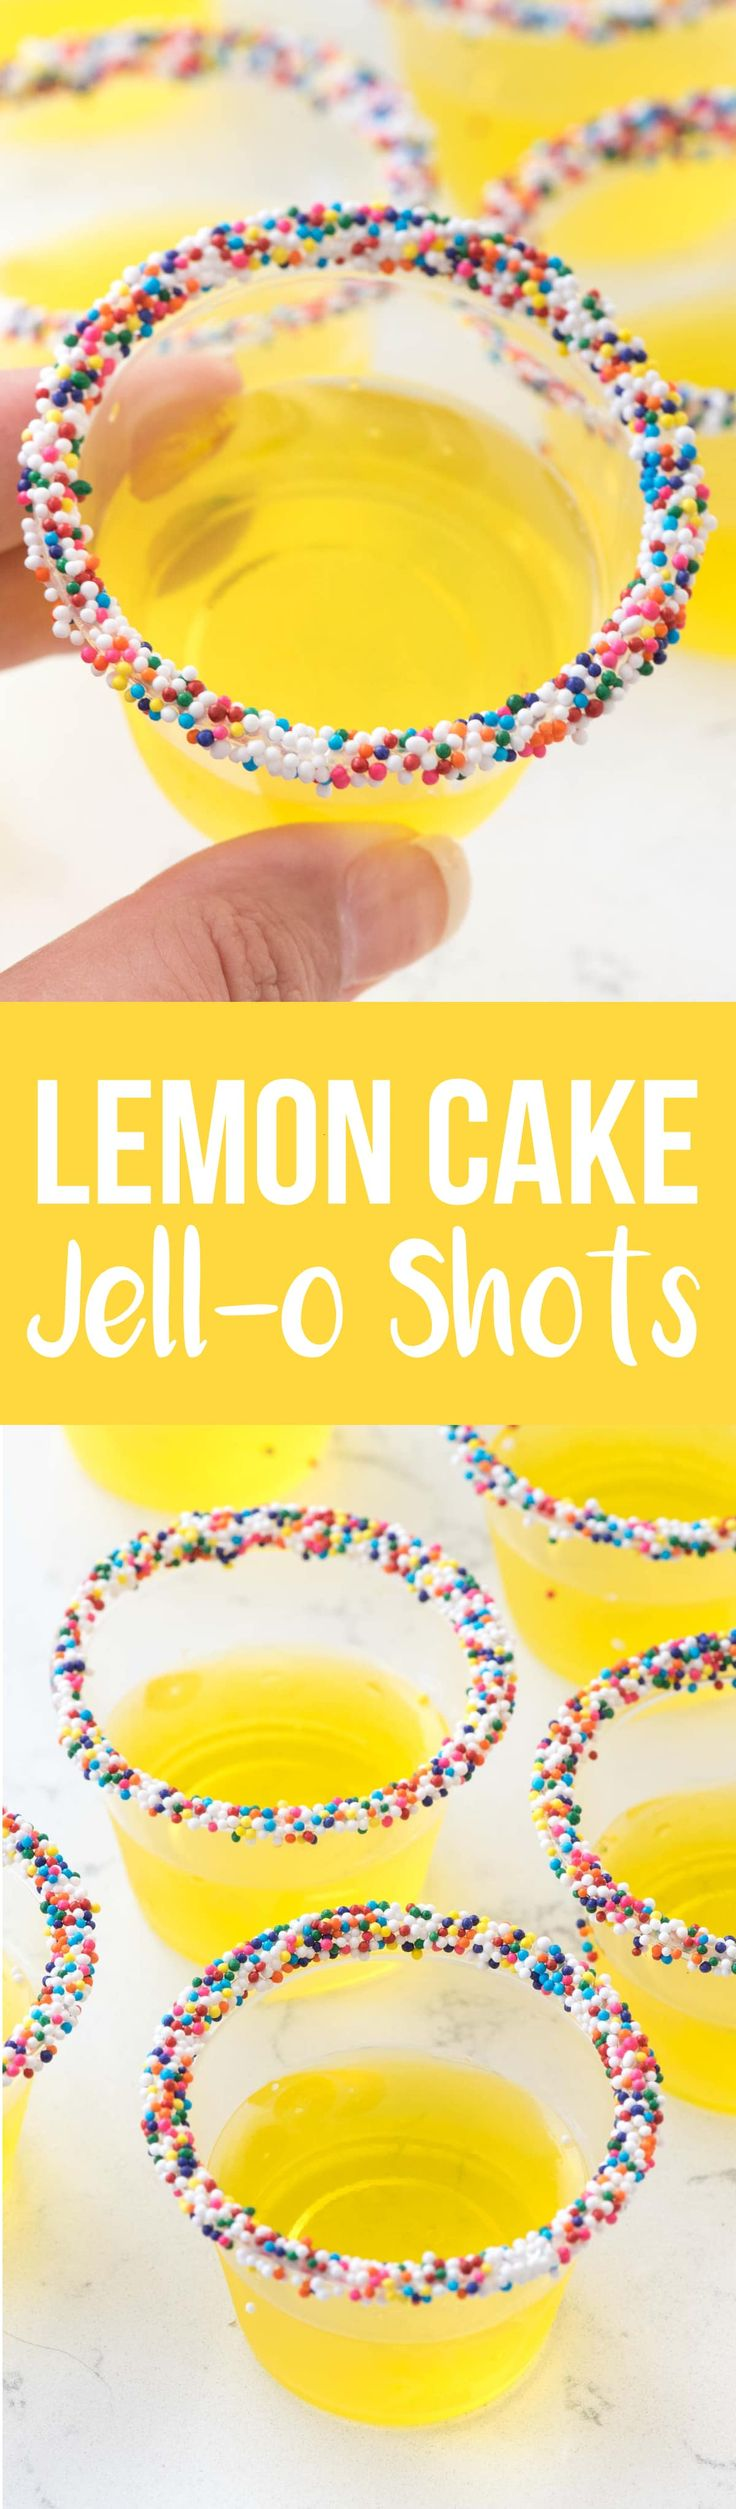 Lemon Cake Jello Shots taste like cake! This classic Jello shot recipe gets a twist with cake vodka and sprinkles for the perfect party shot! via @crazyforcrust